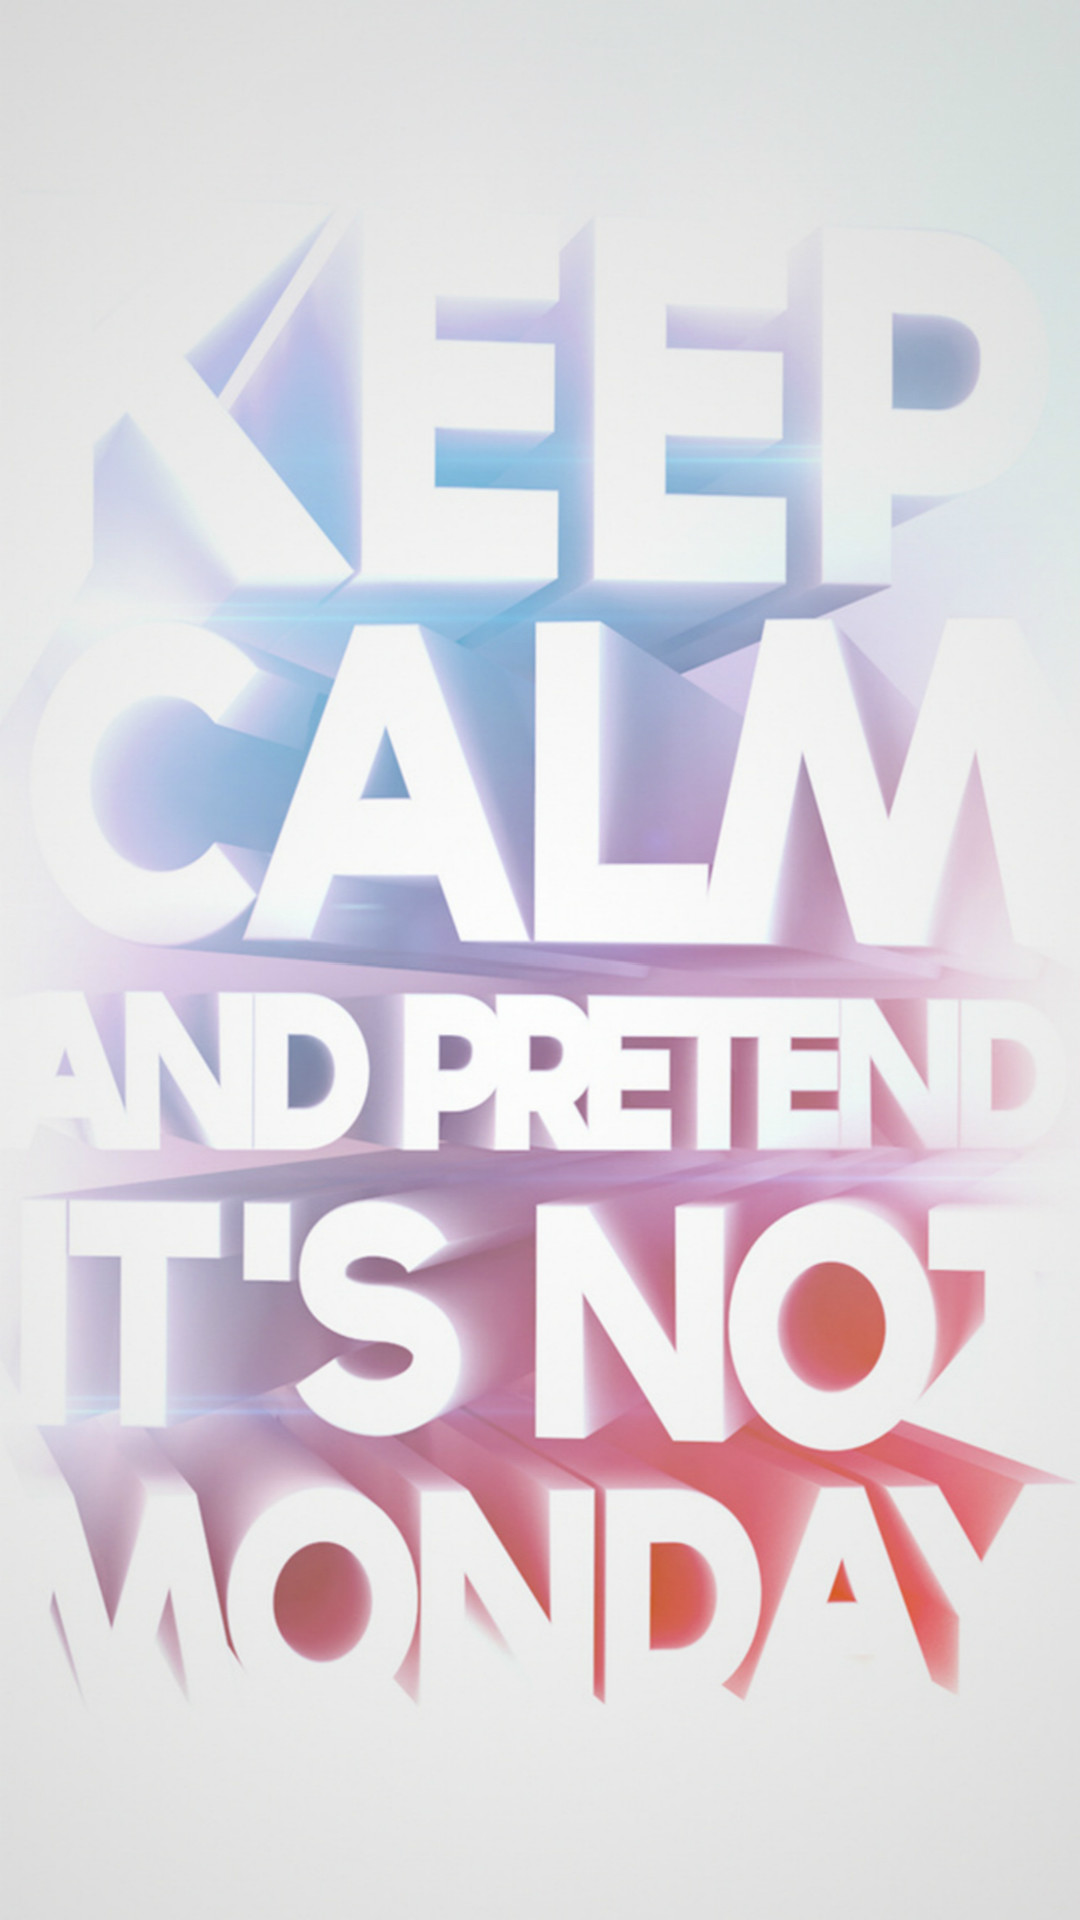 Fun Text Keep Calm And Pretend It's Not Monday iPhone 6 wallpaper. Wallpaper  QuotesIphone 6 WallpaperPhone …